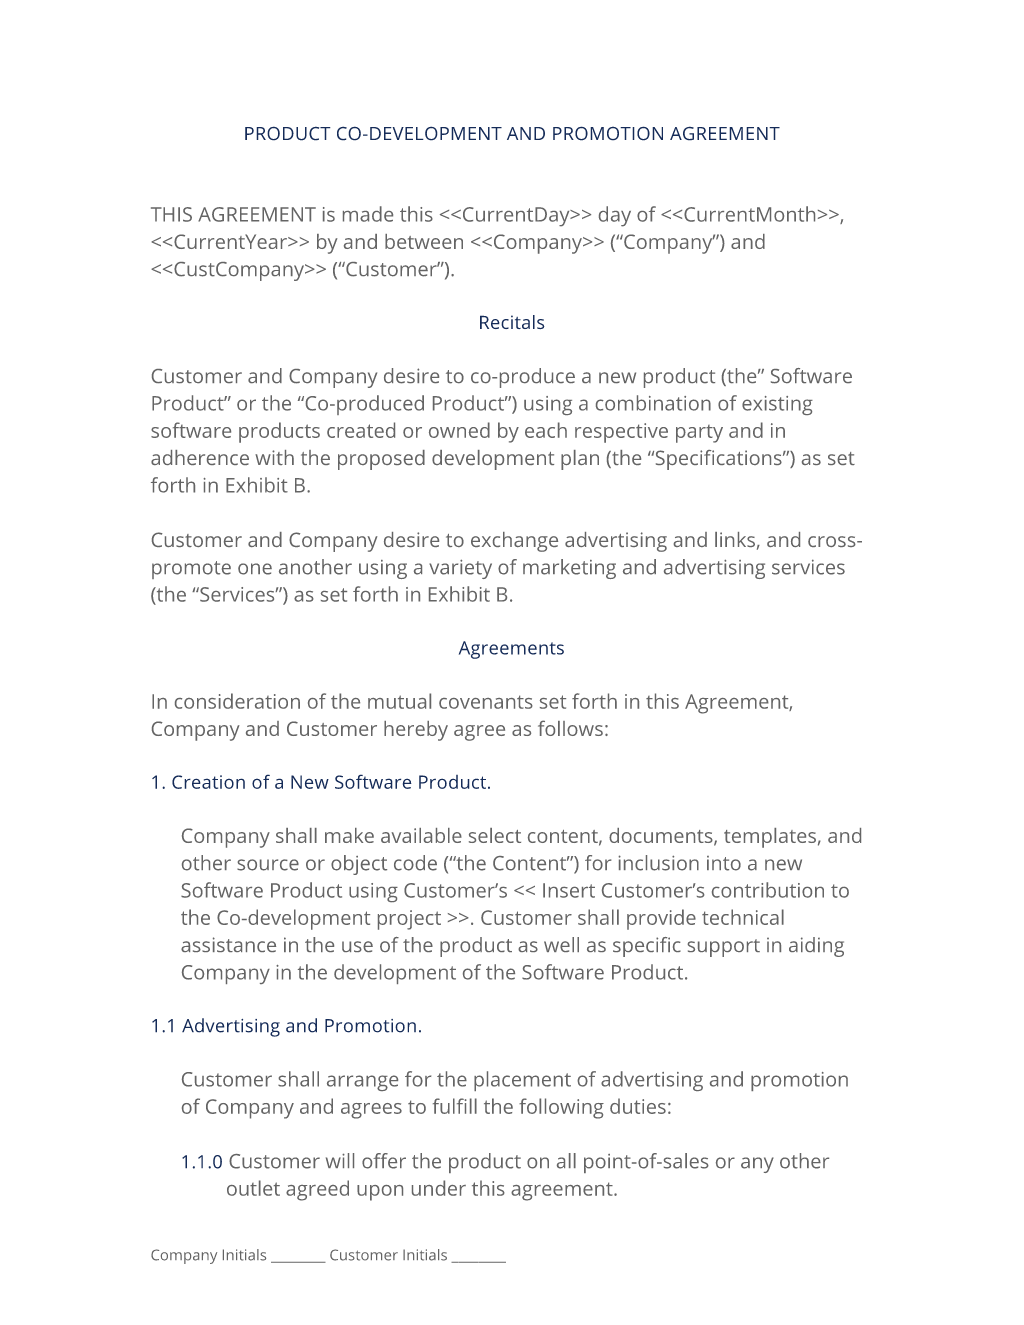 Enterprise development agreement template development agreement.